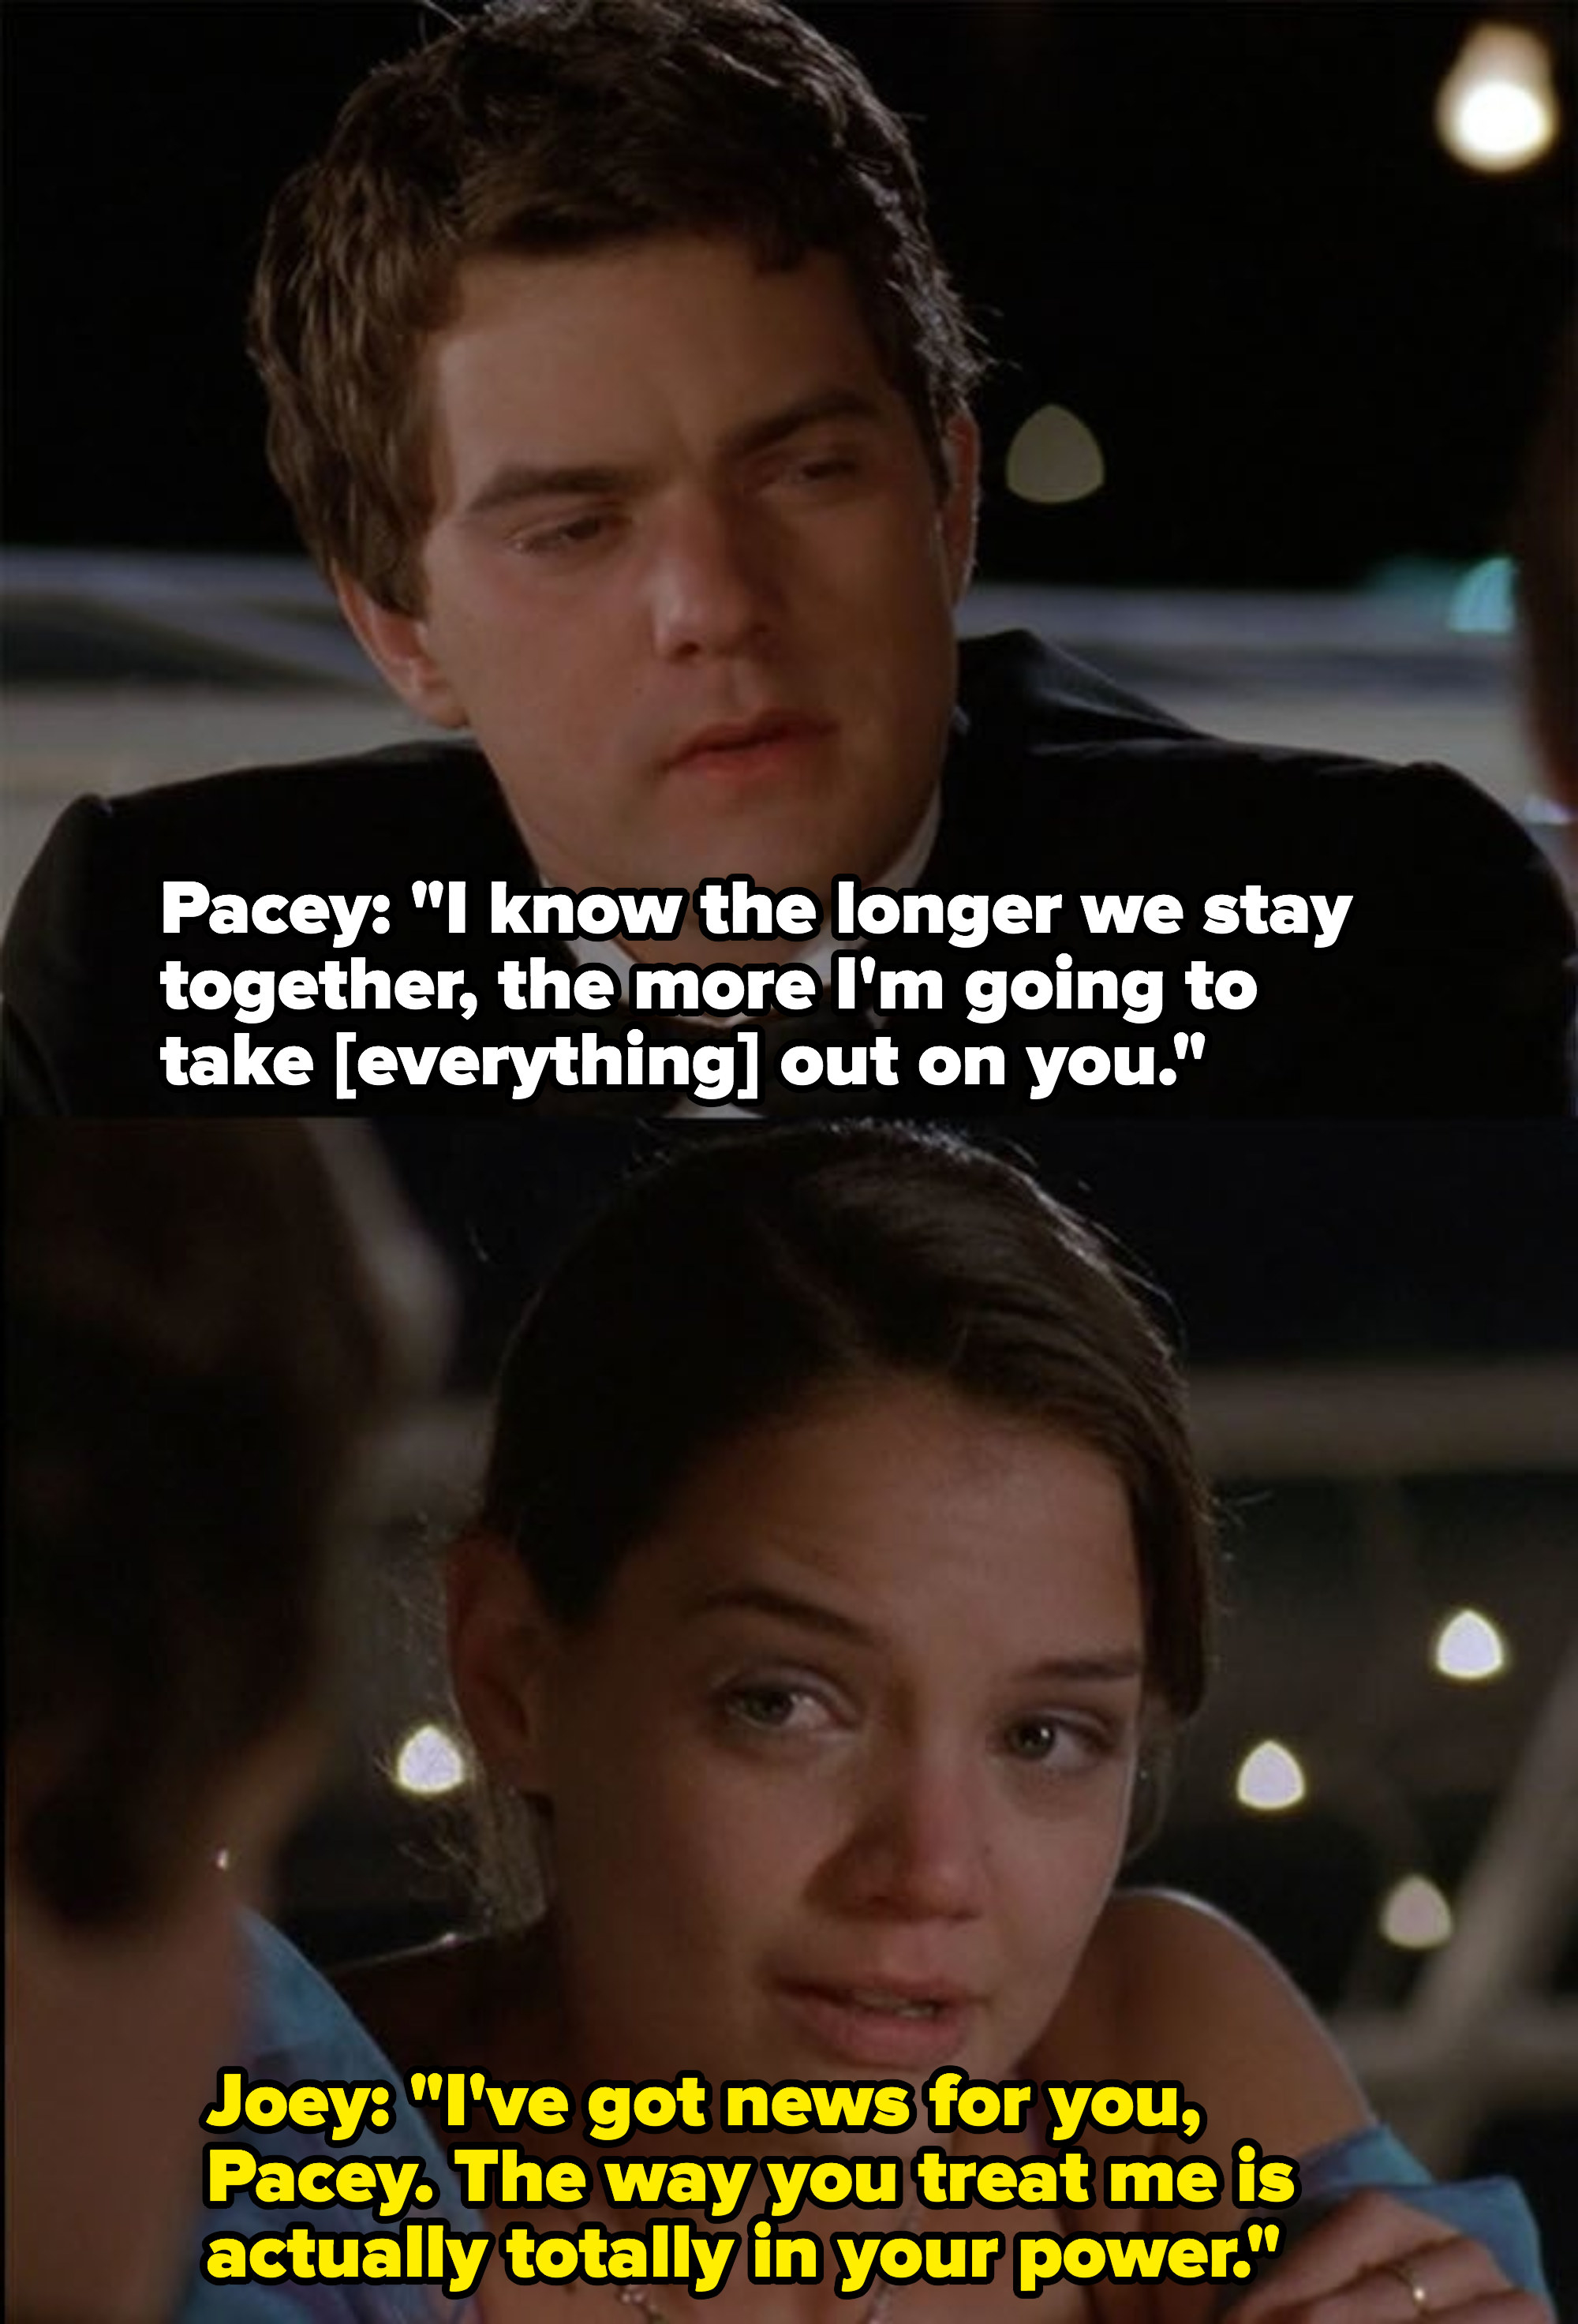 Pacey says he's taking his failures out on Joey and she reminds him that he can control how he treats her